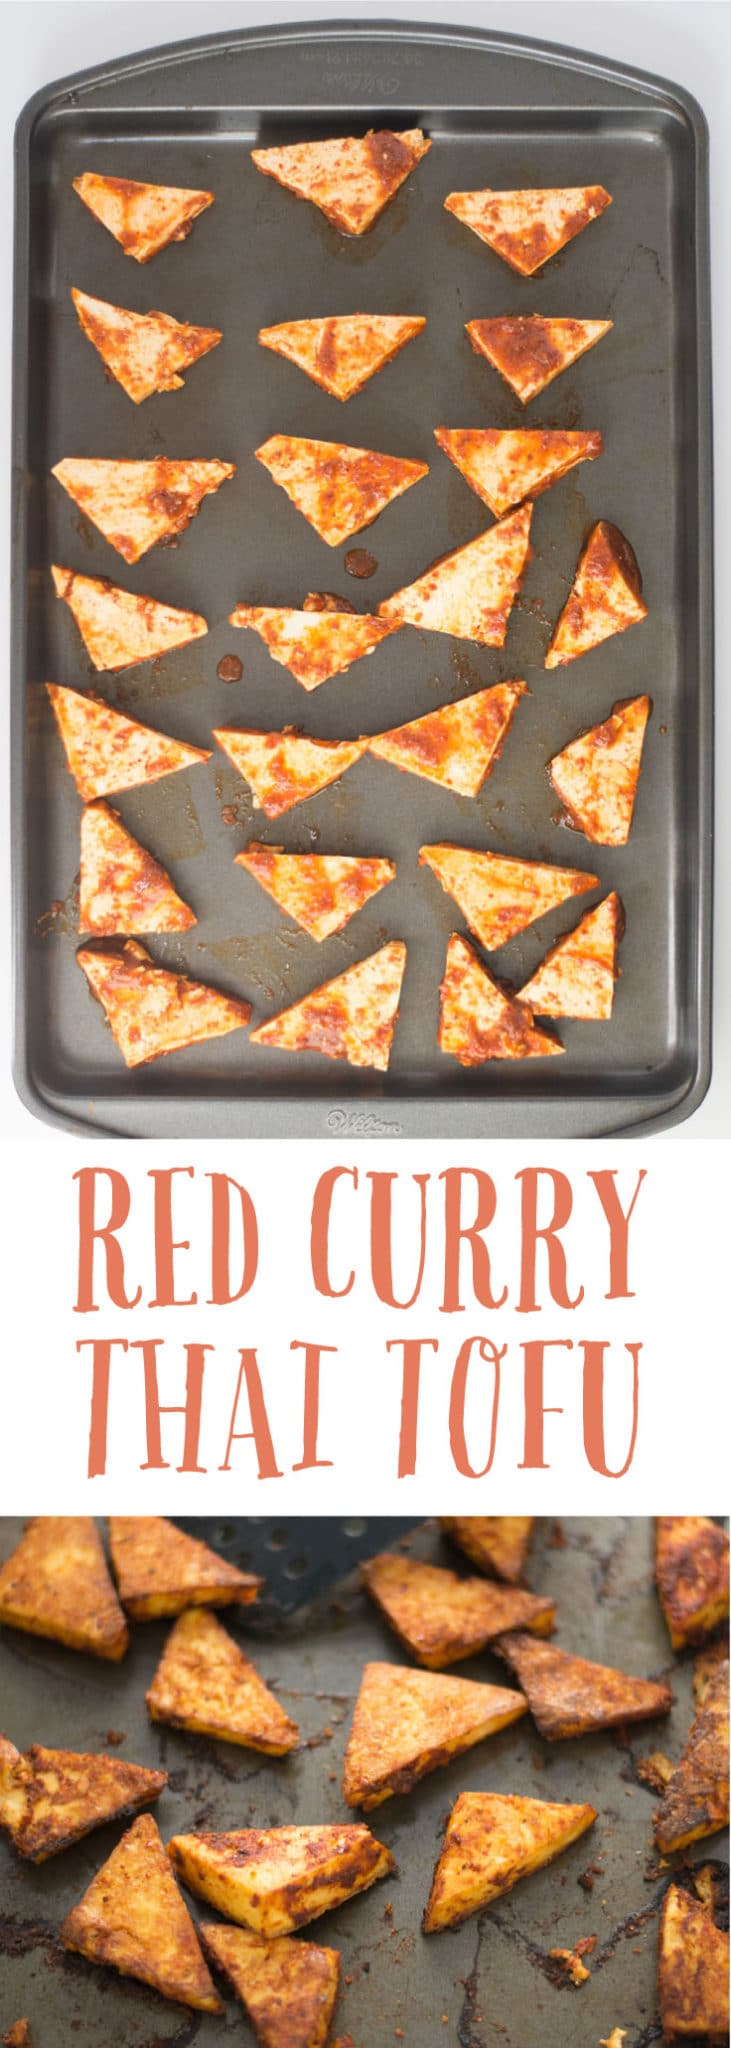 Thai Tofu Curry -- This Thai-inspired tofu has the perfect amount of flavor spice and is baked to crispy perfection. Only requires six ingredients to make this versatile tofu recipe. Top off a big bowl of salad or hearty grains such as quinoa or rice and you have yourself a filling vegan meal! #vegan #vegetarian #plantbased #glutenfree #cleaneating #healthy  | mindfulavocado